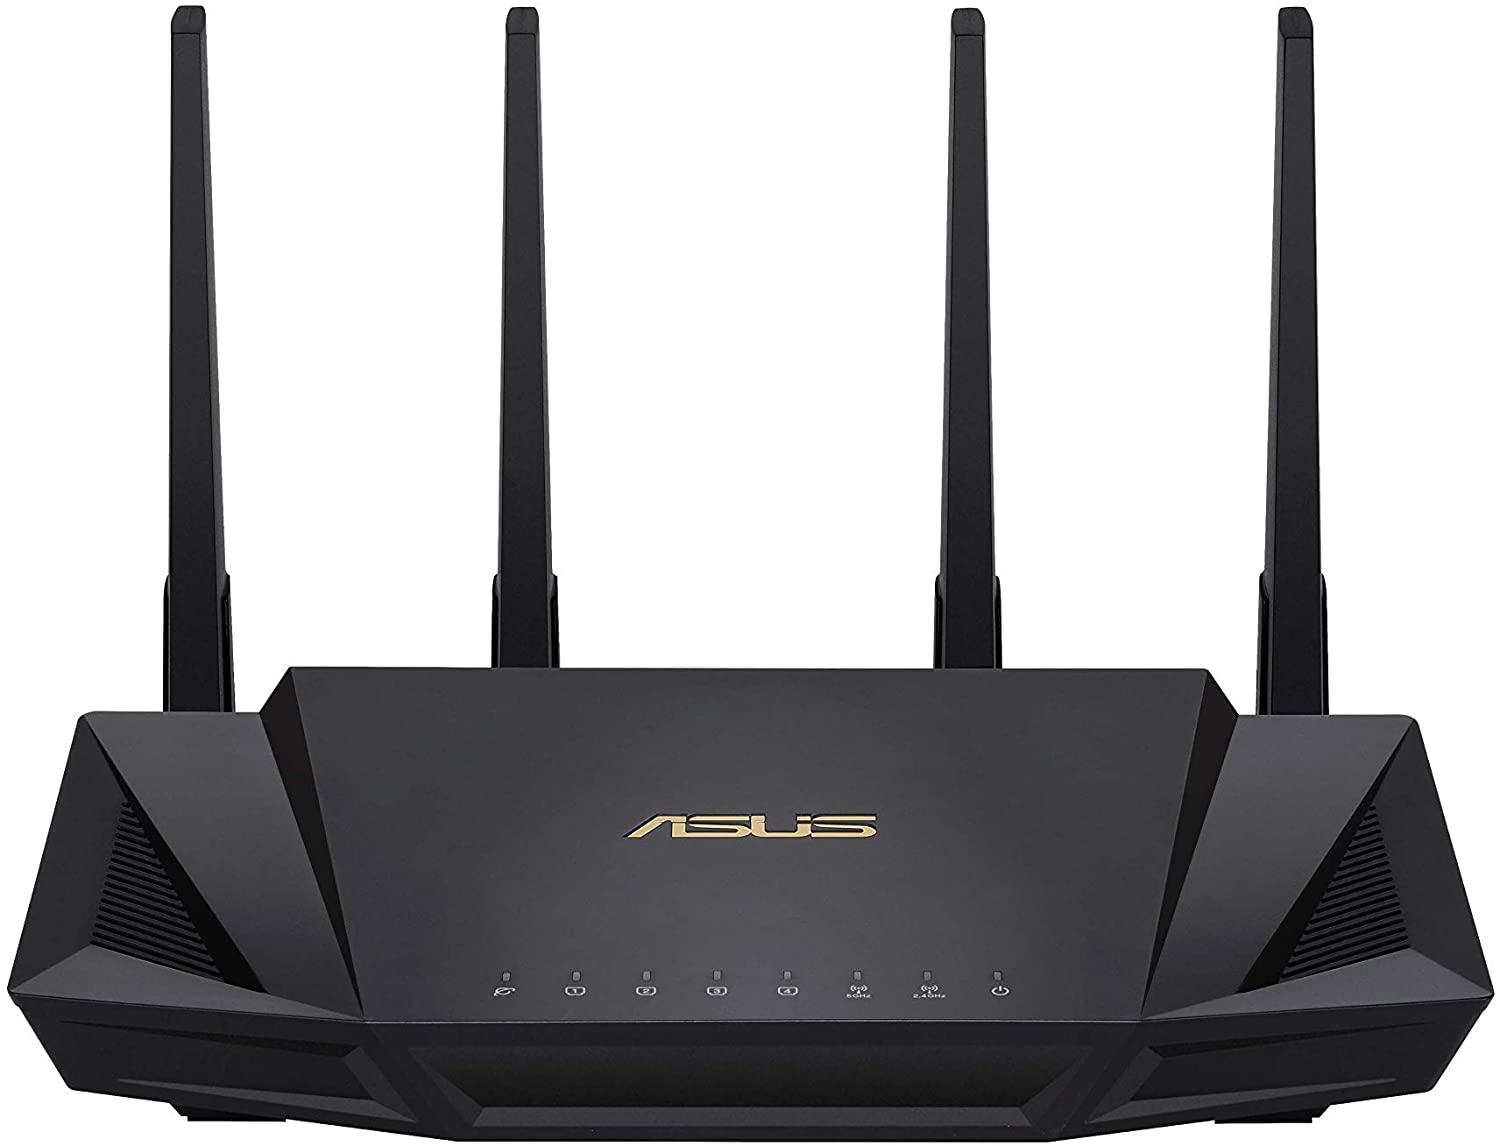 ASUS RT-AX3000 Router Review